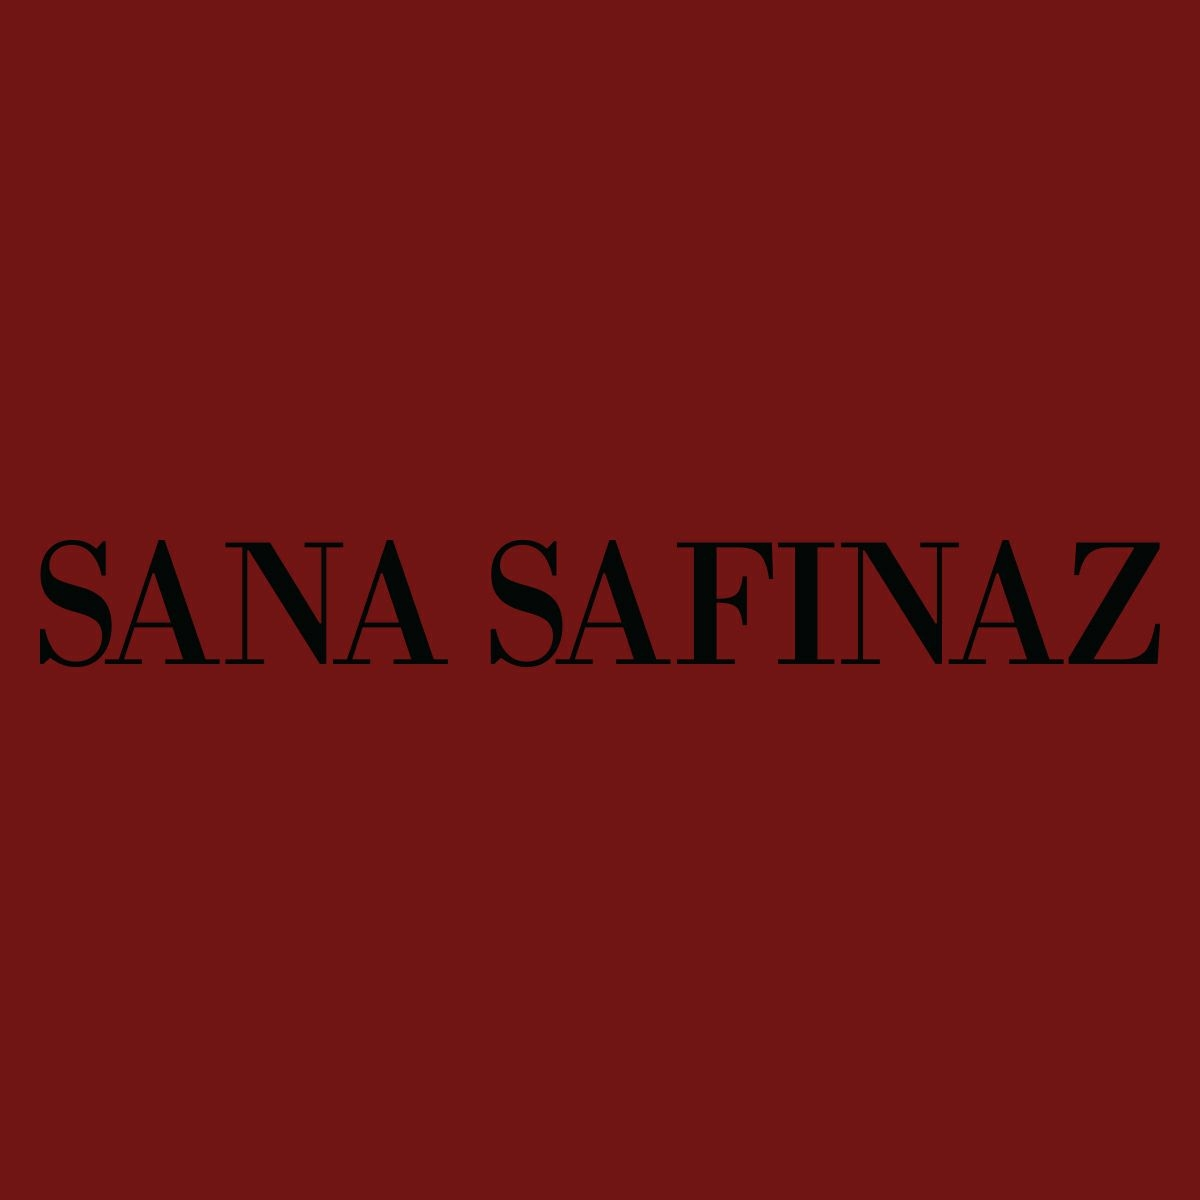 Sana Safinaz's Sales, Promotions and Deals